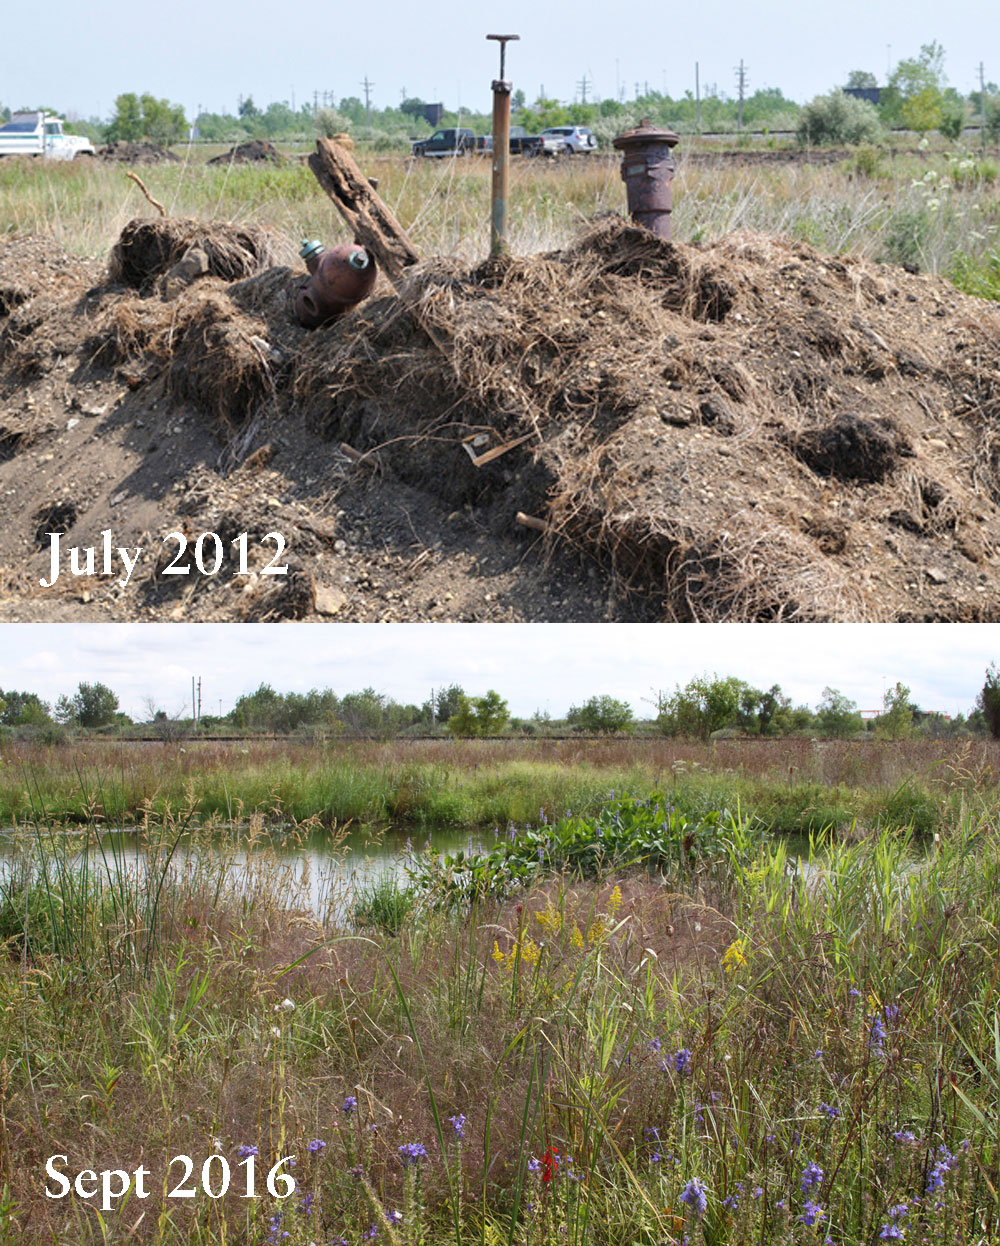 Before and after: Over the past four years of TWI's restoration work at Lobelia Meadows, infrastructure, bare ground, and weedy species have been replaced with healthy wetland and prairie habitats and a great diversity of wildflowers.